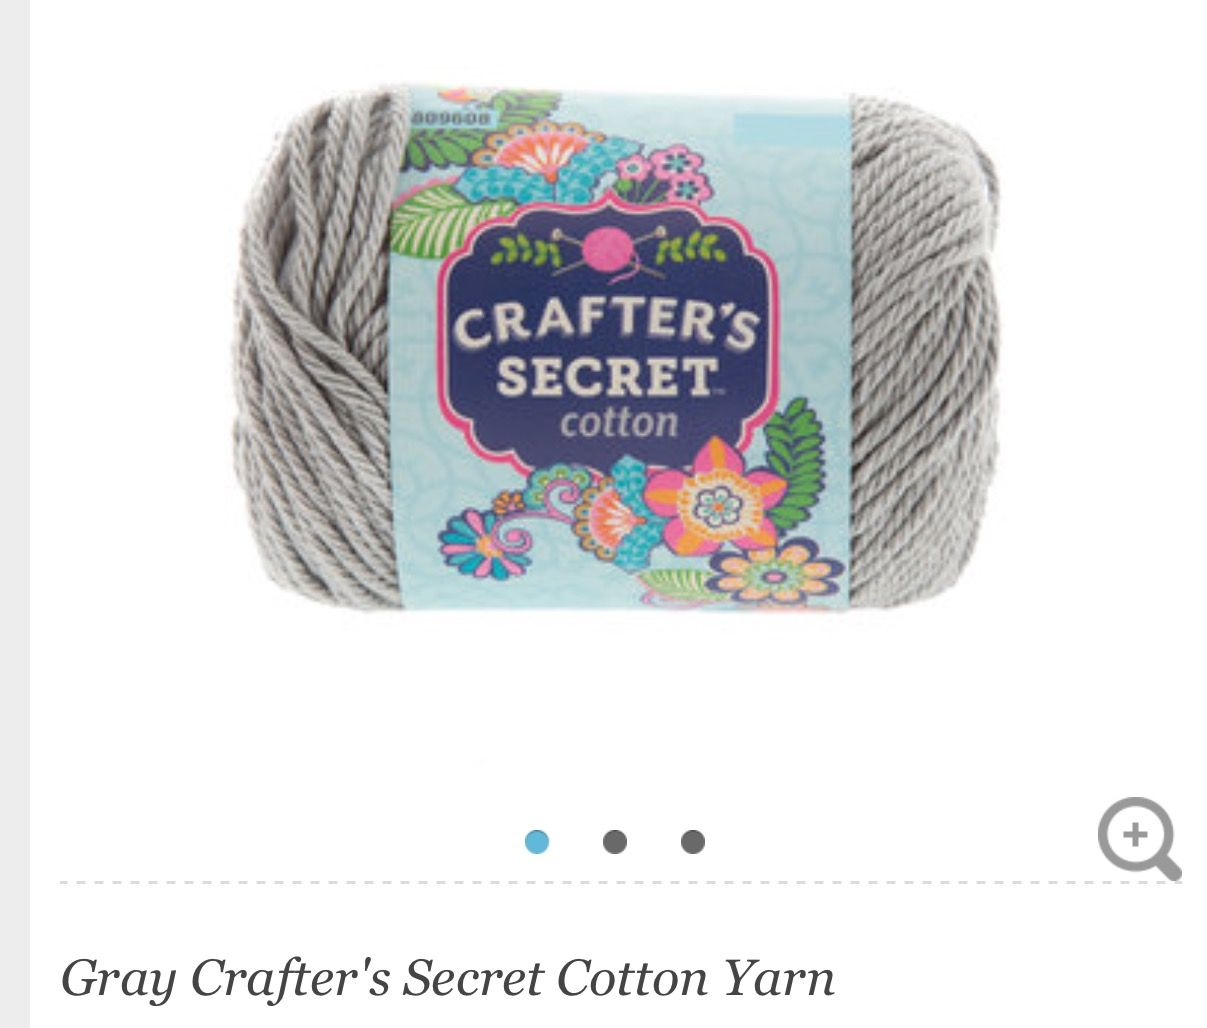 Crafter's secret cotton (gray) | Yarn colors | Yarn colors